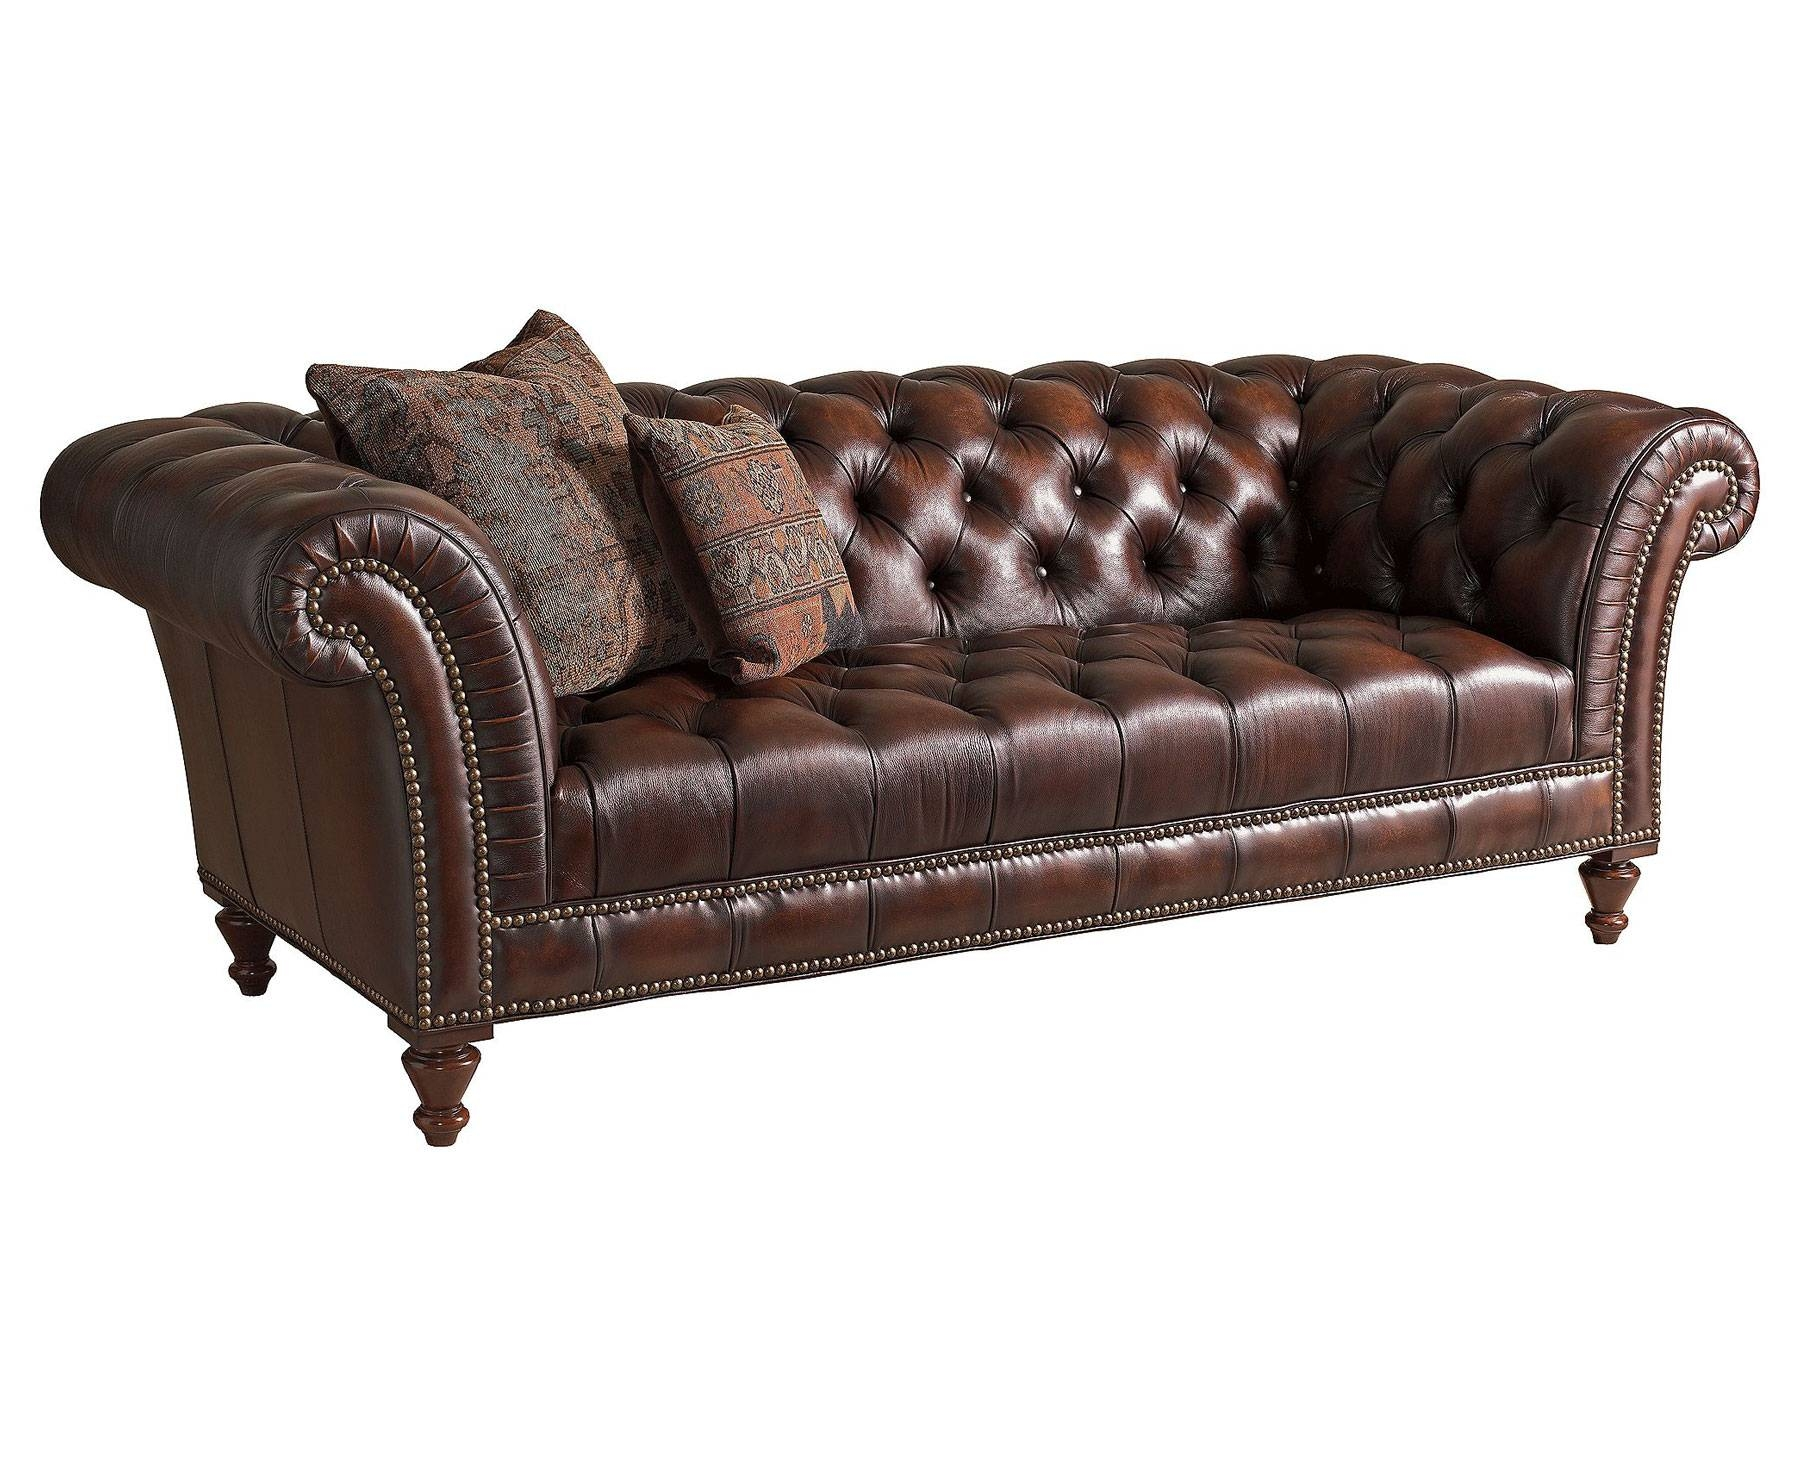 Dark Brown Modern Tufted Leather Sofa Set With Wooden Legs Pillow with regard to Brown Tufted Sofas (Image 6 of 15)